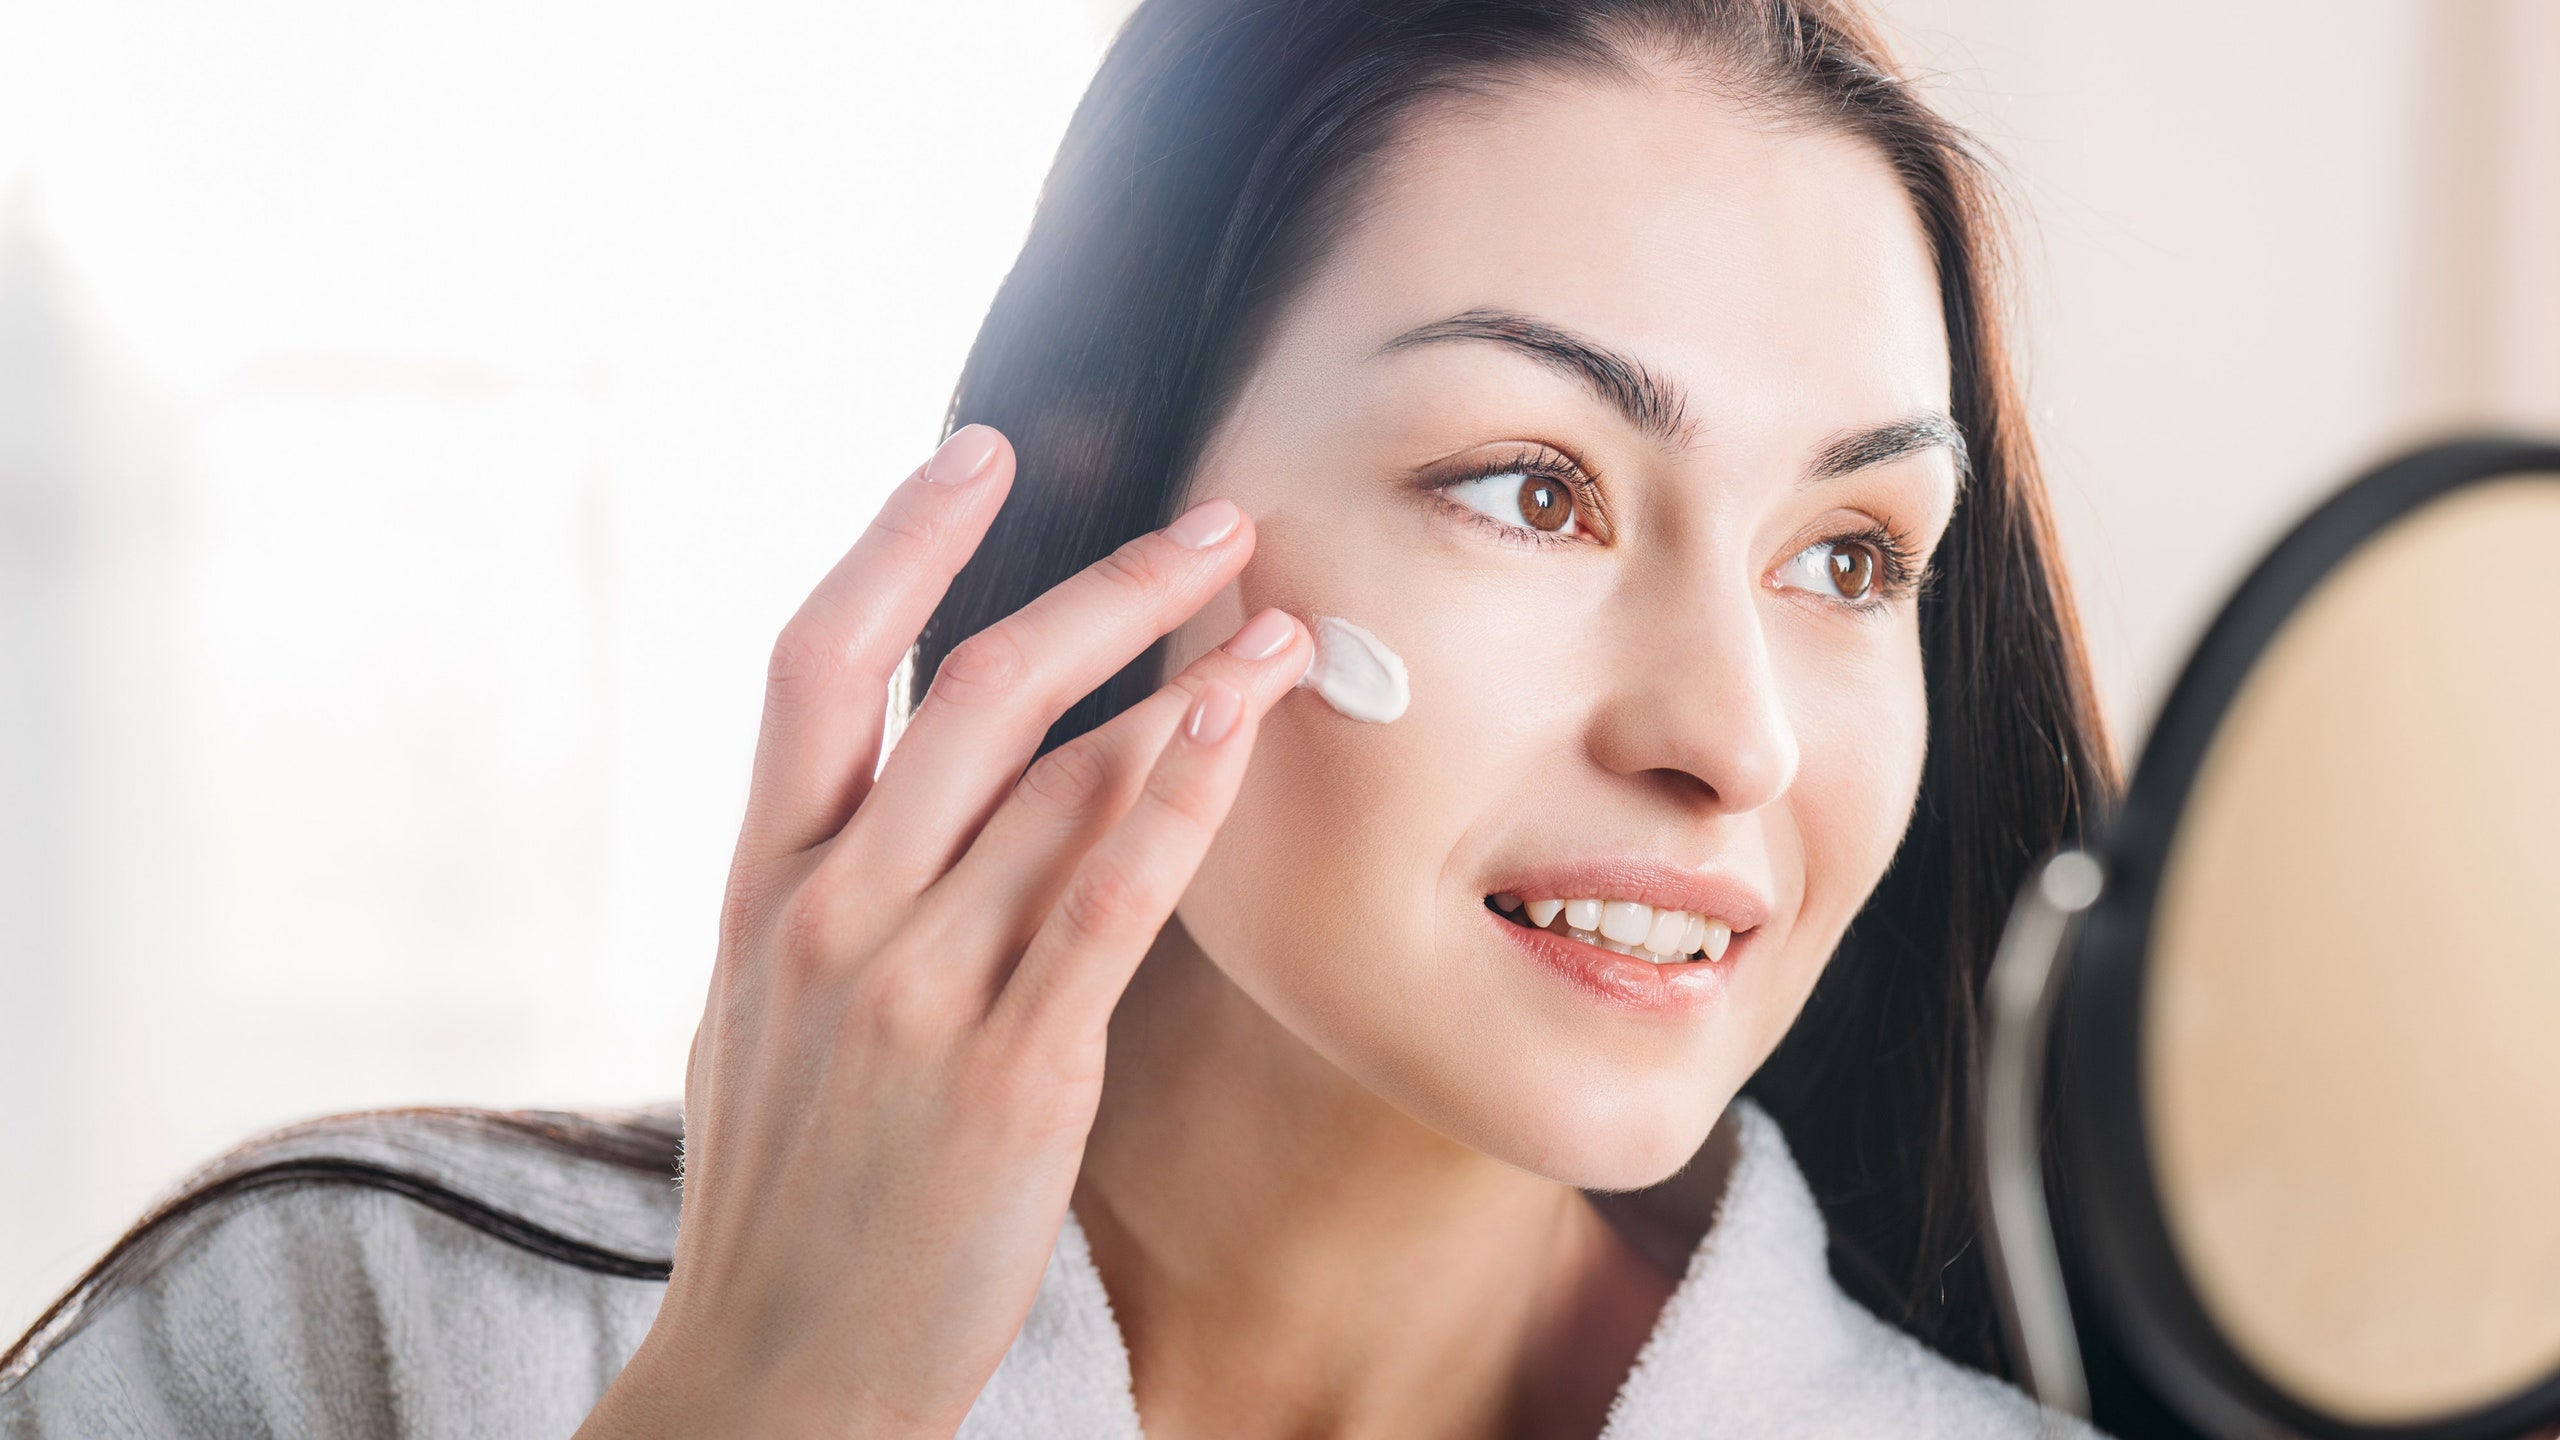 Feel Better About Yourself With These Beauty Tips